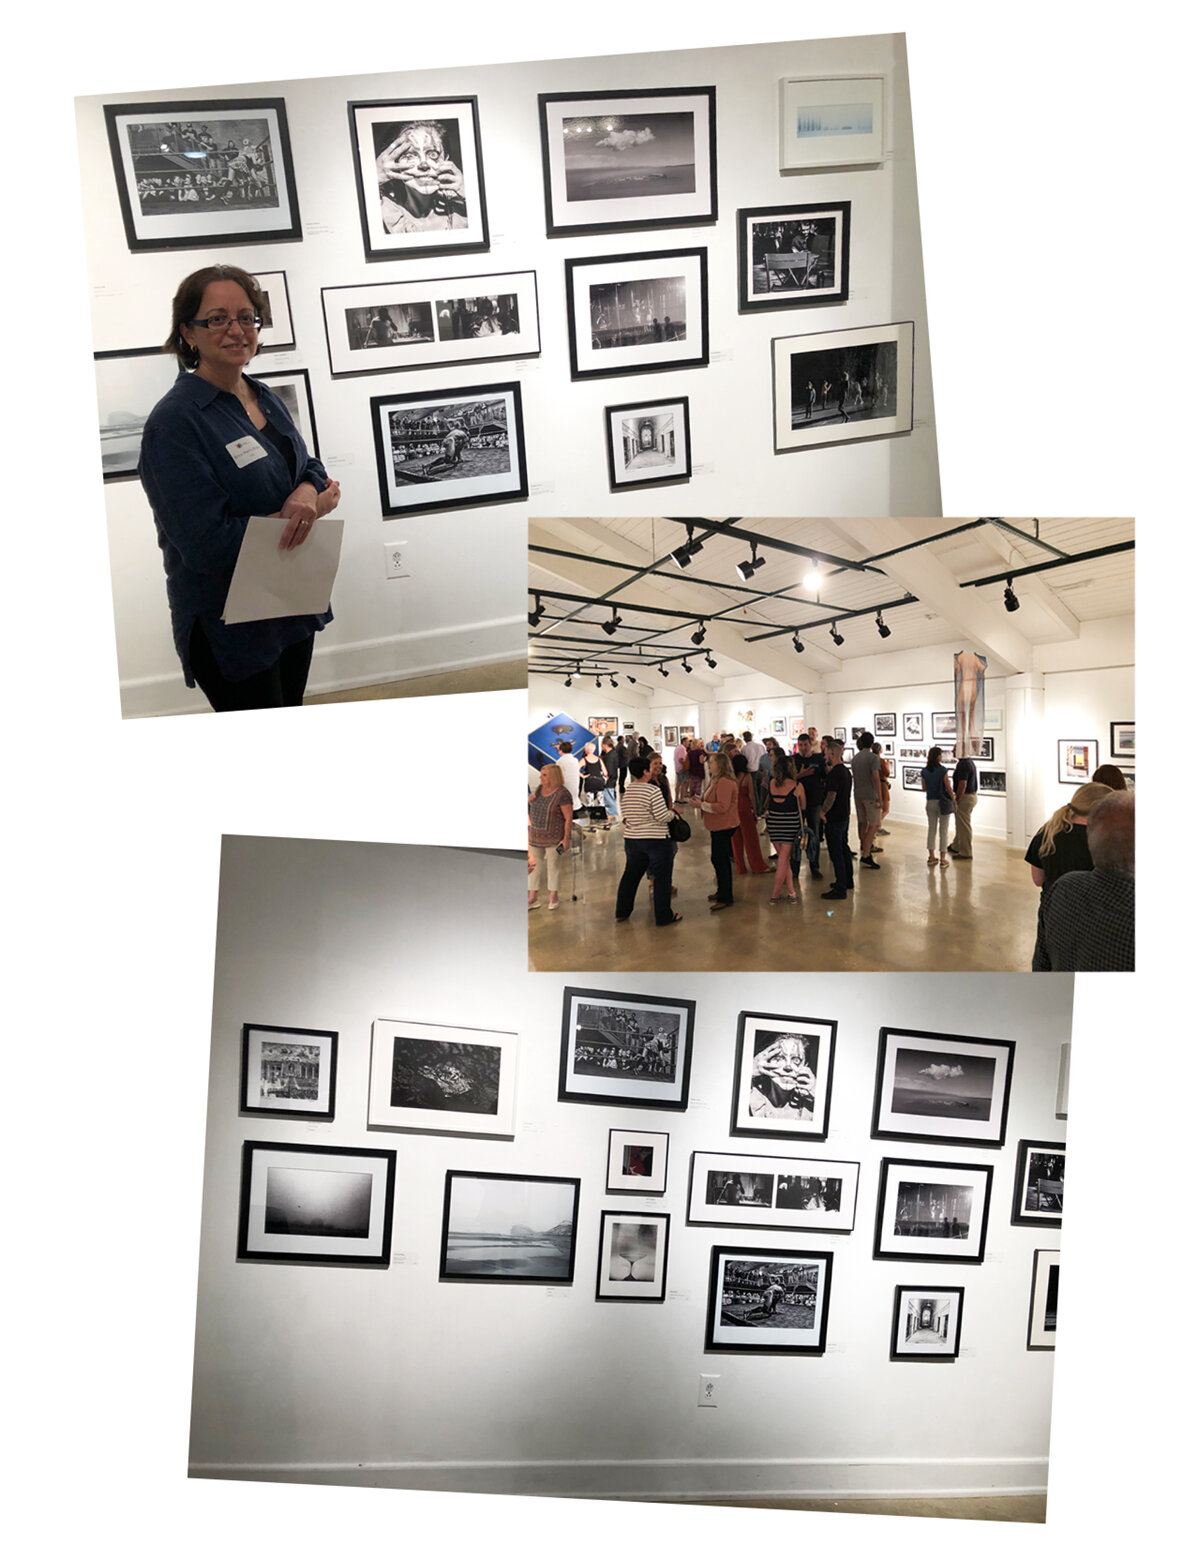 MonmouthMuseumCollage.jpg